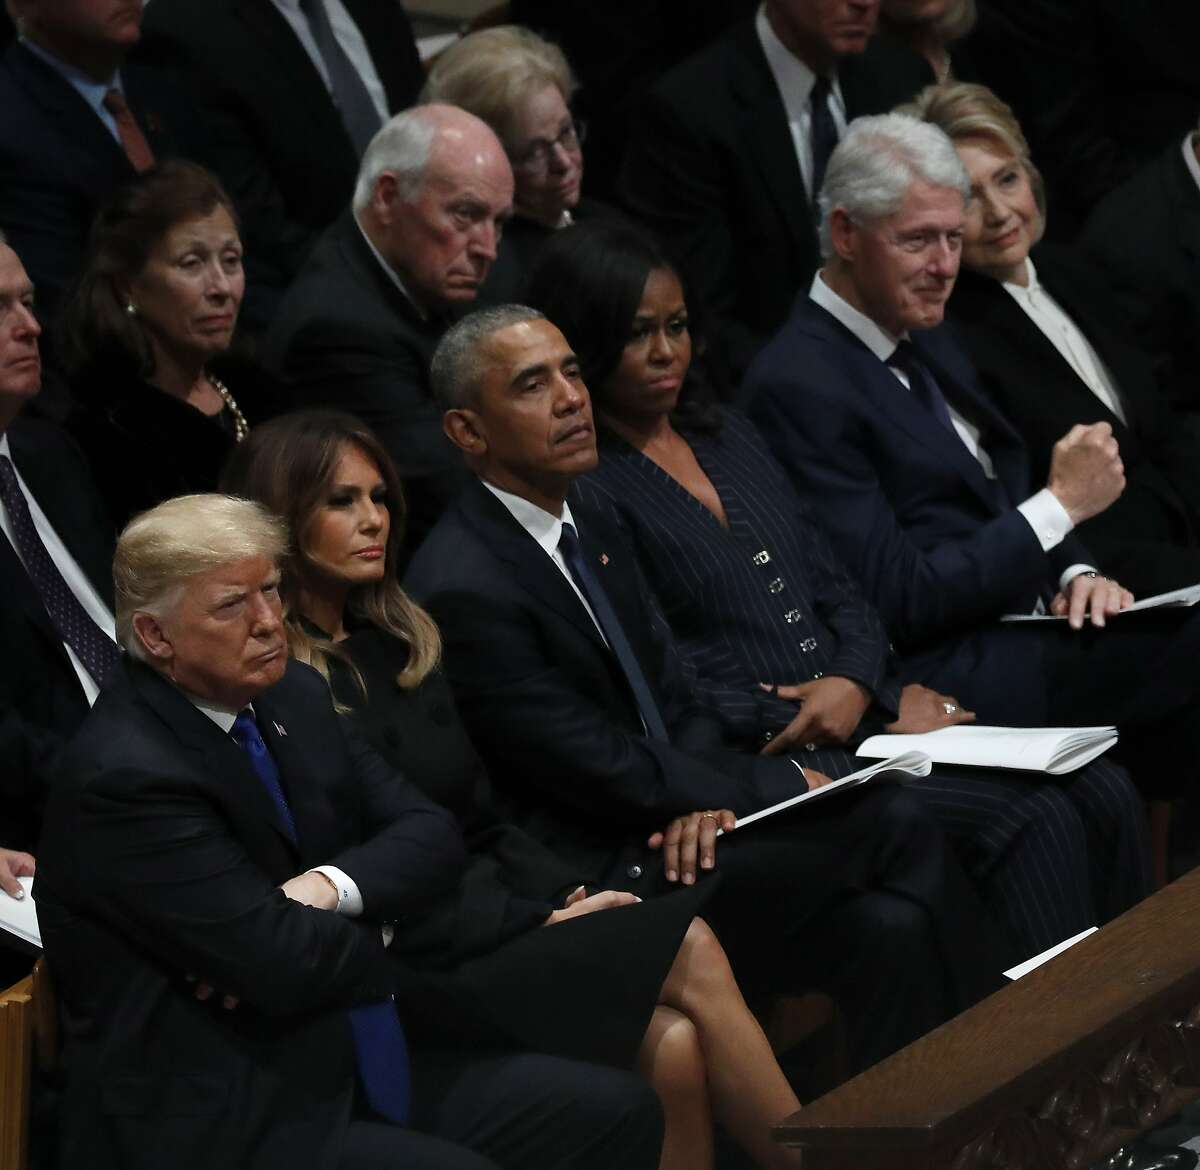 Bill Clinton pumps his fist as he reacted as Reverend Dr. Russell Levenson Jr. officiated during the State Funeral for George H.W. Bush at the Washington National Cathedral, Wednesday, Dec. 5, 2018, in Washington.